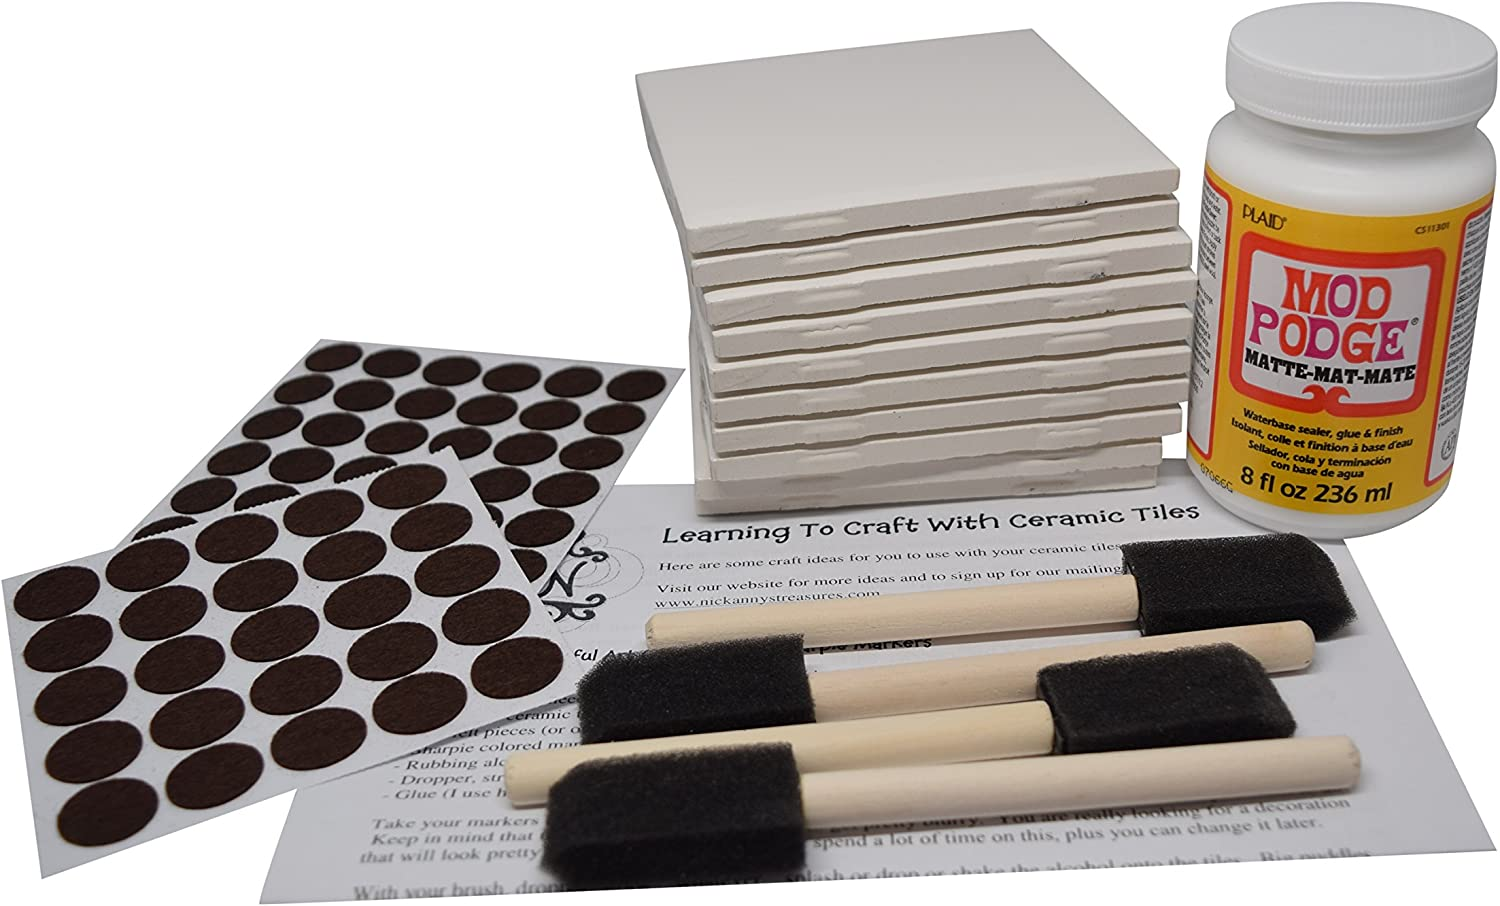 Annys Coaster Tile Kit Set Of 10 Glossy White Ceramic Tiles 4 By 4 Each Exclusive Guide For Tile Crafts Mod Podge 4 Sponge Craft Brushes And Felt Pads